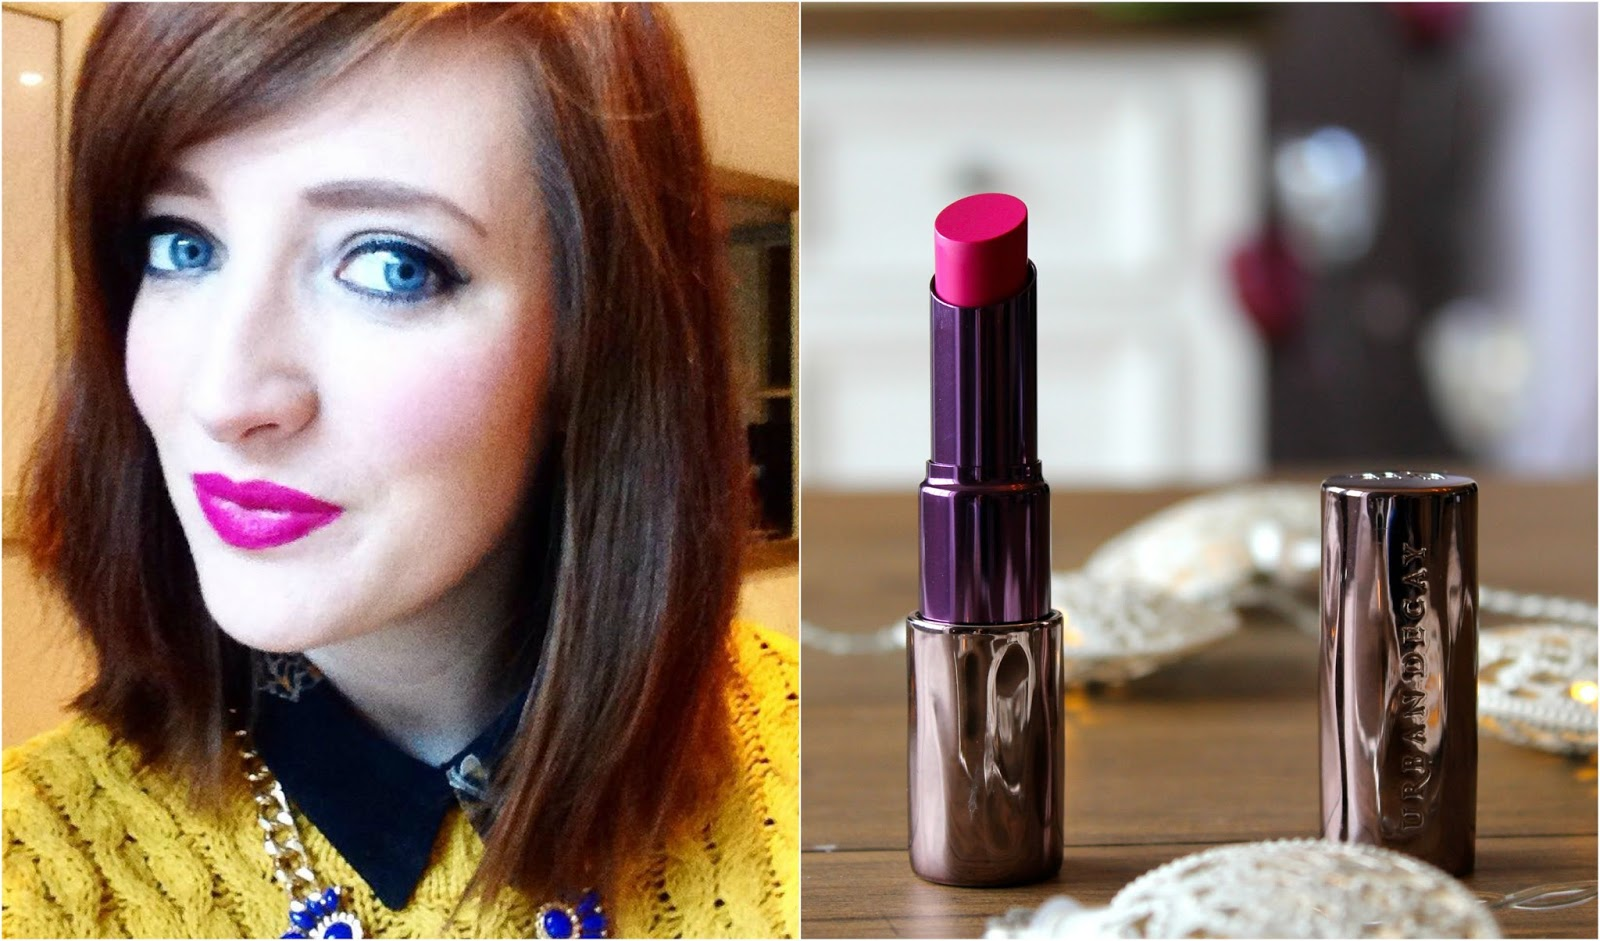 Urban decay Anarchy Lipstick bec boop